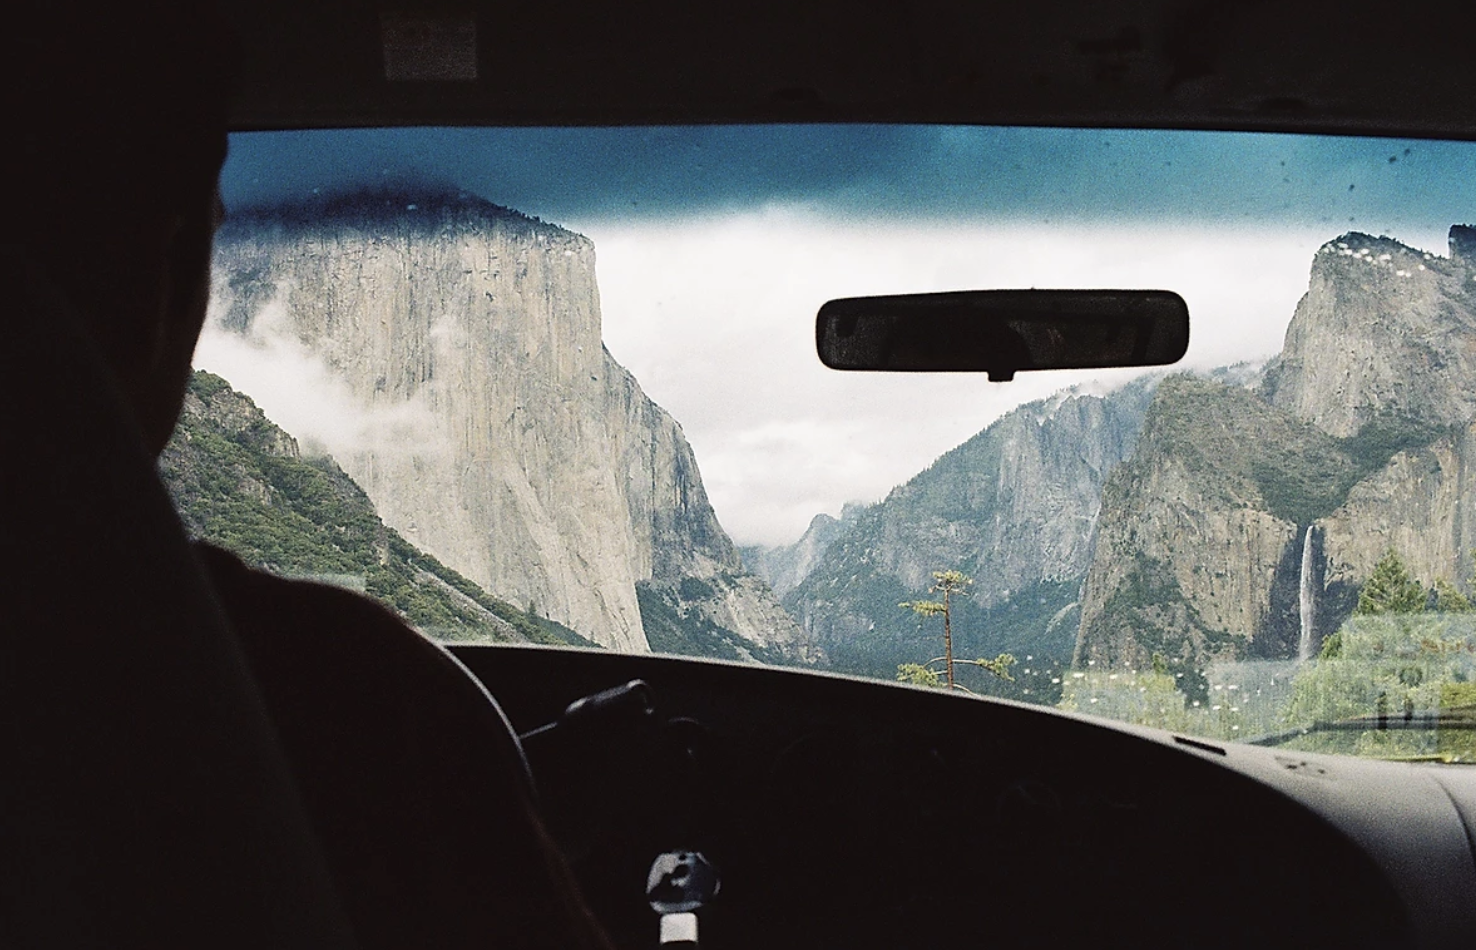 Driving into Yosemite